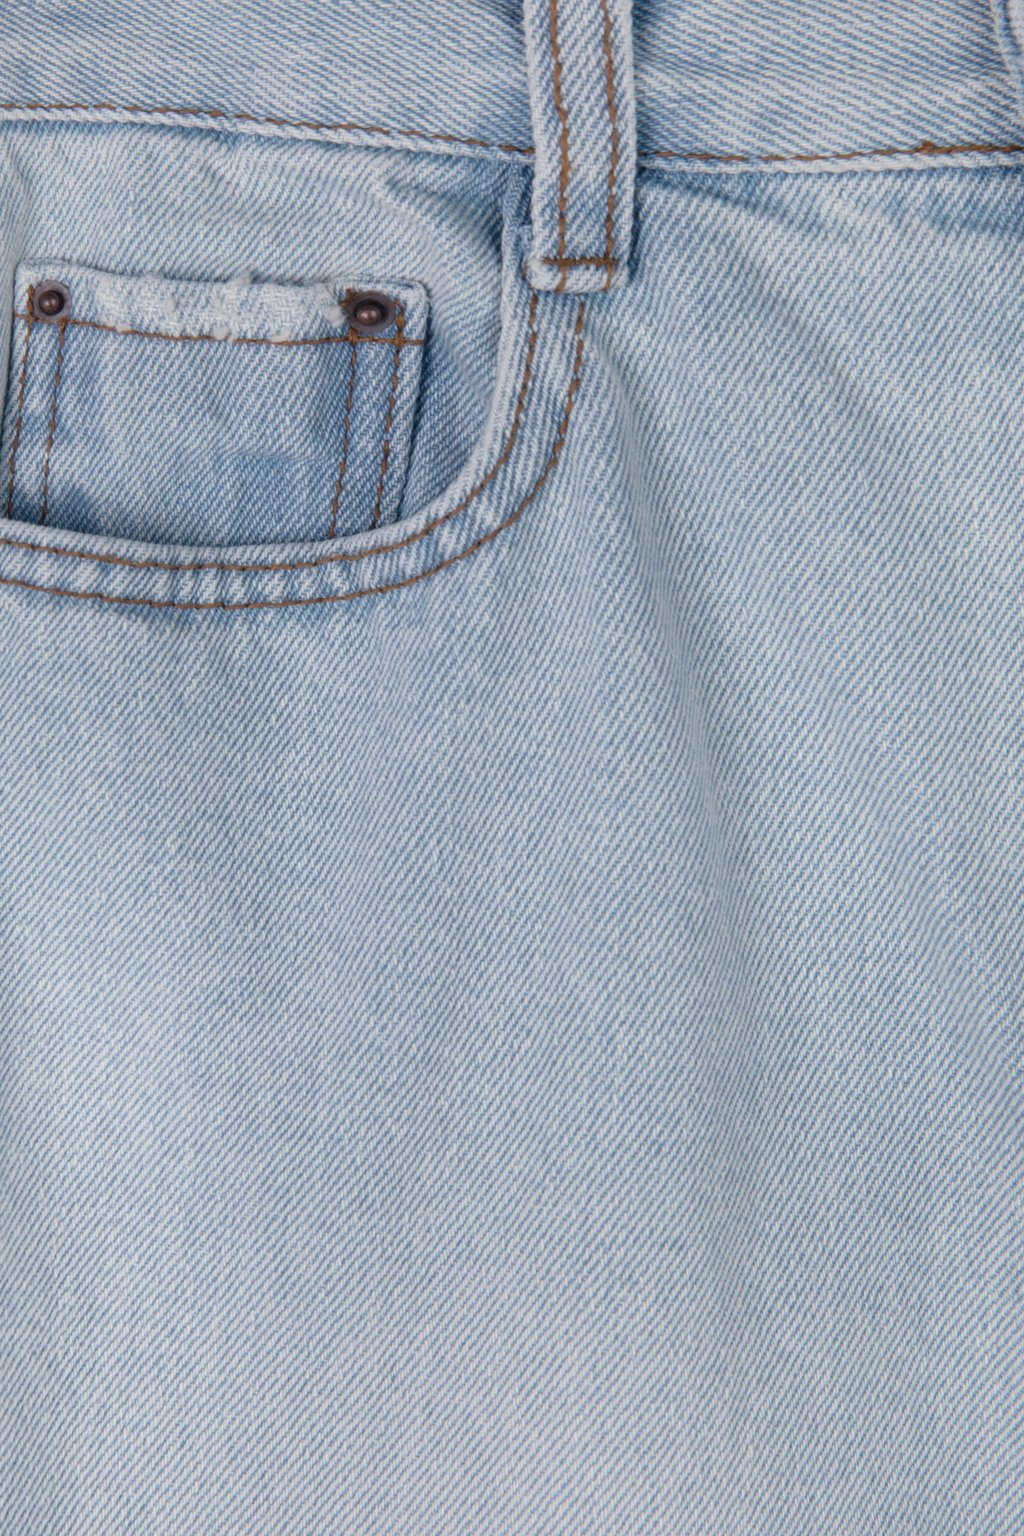 Jean K006 Light Blue 6